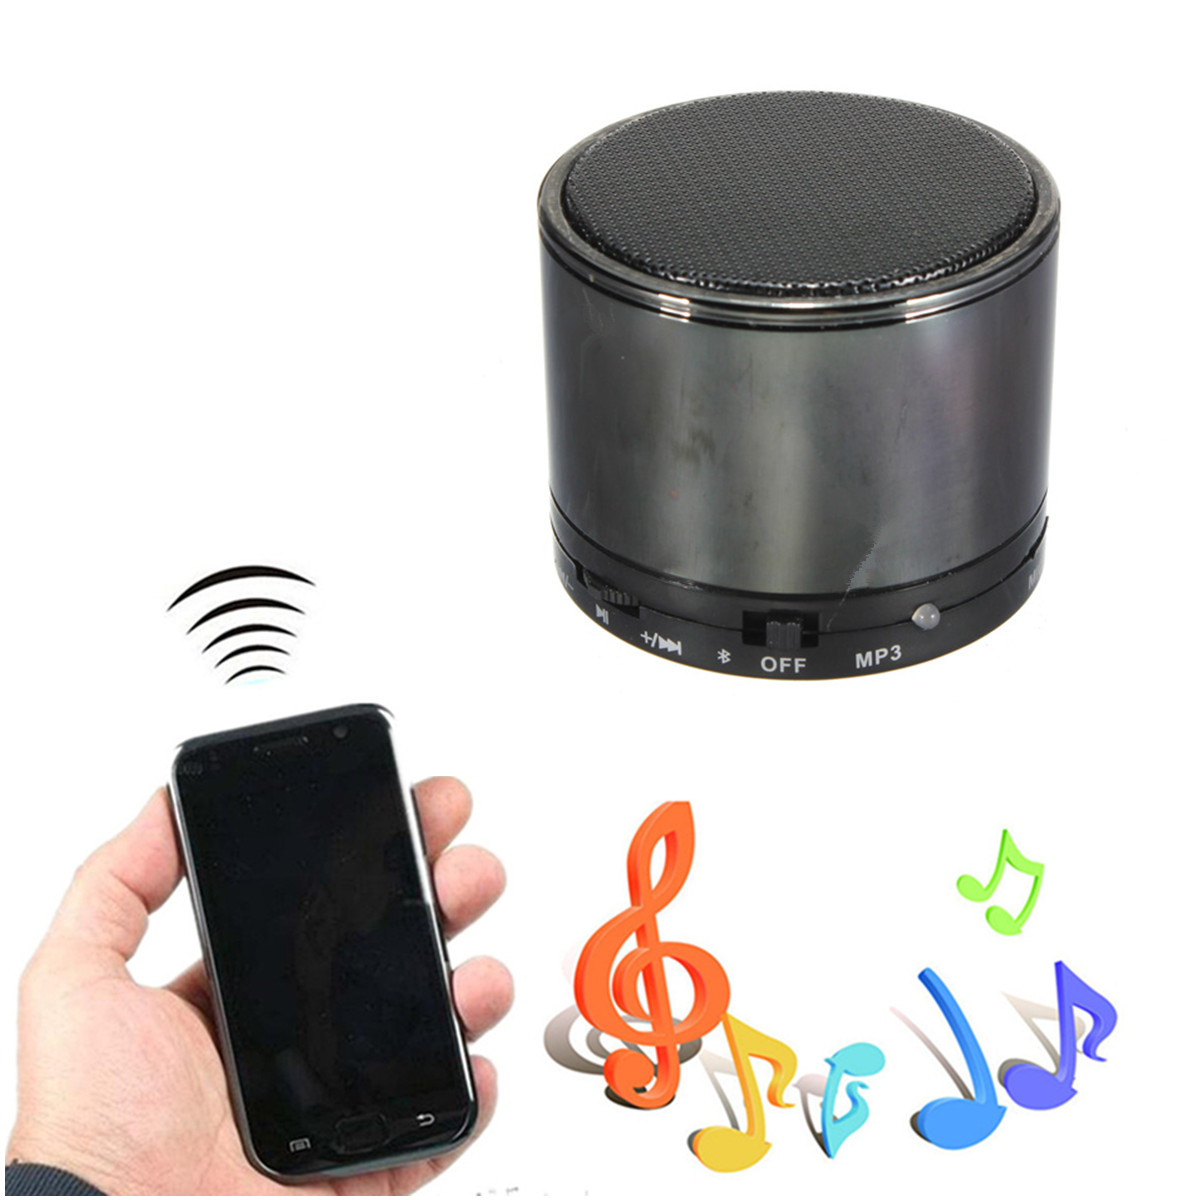 hifi bluetooth st r o enceinte haut parleur tf mp3 lecteur pr iphone 6 5 5s mp3 ebay. Black Bedroom Furniture Sets. Home Design Ideas